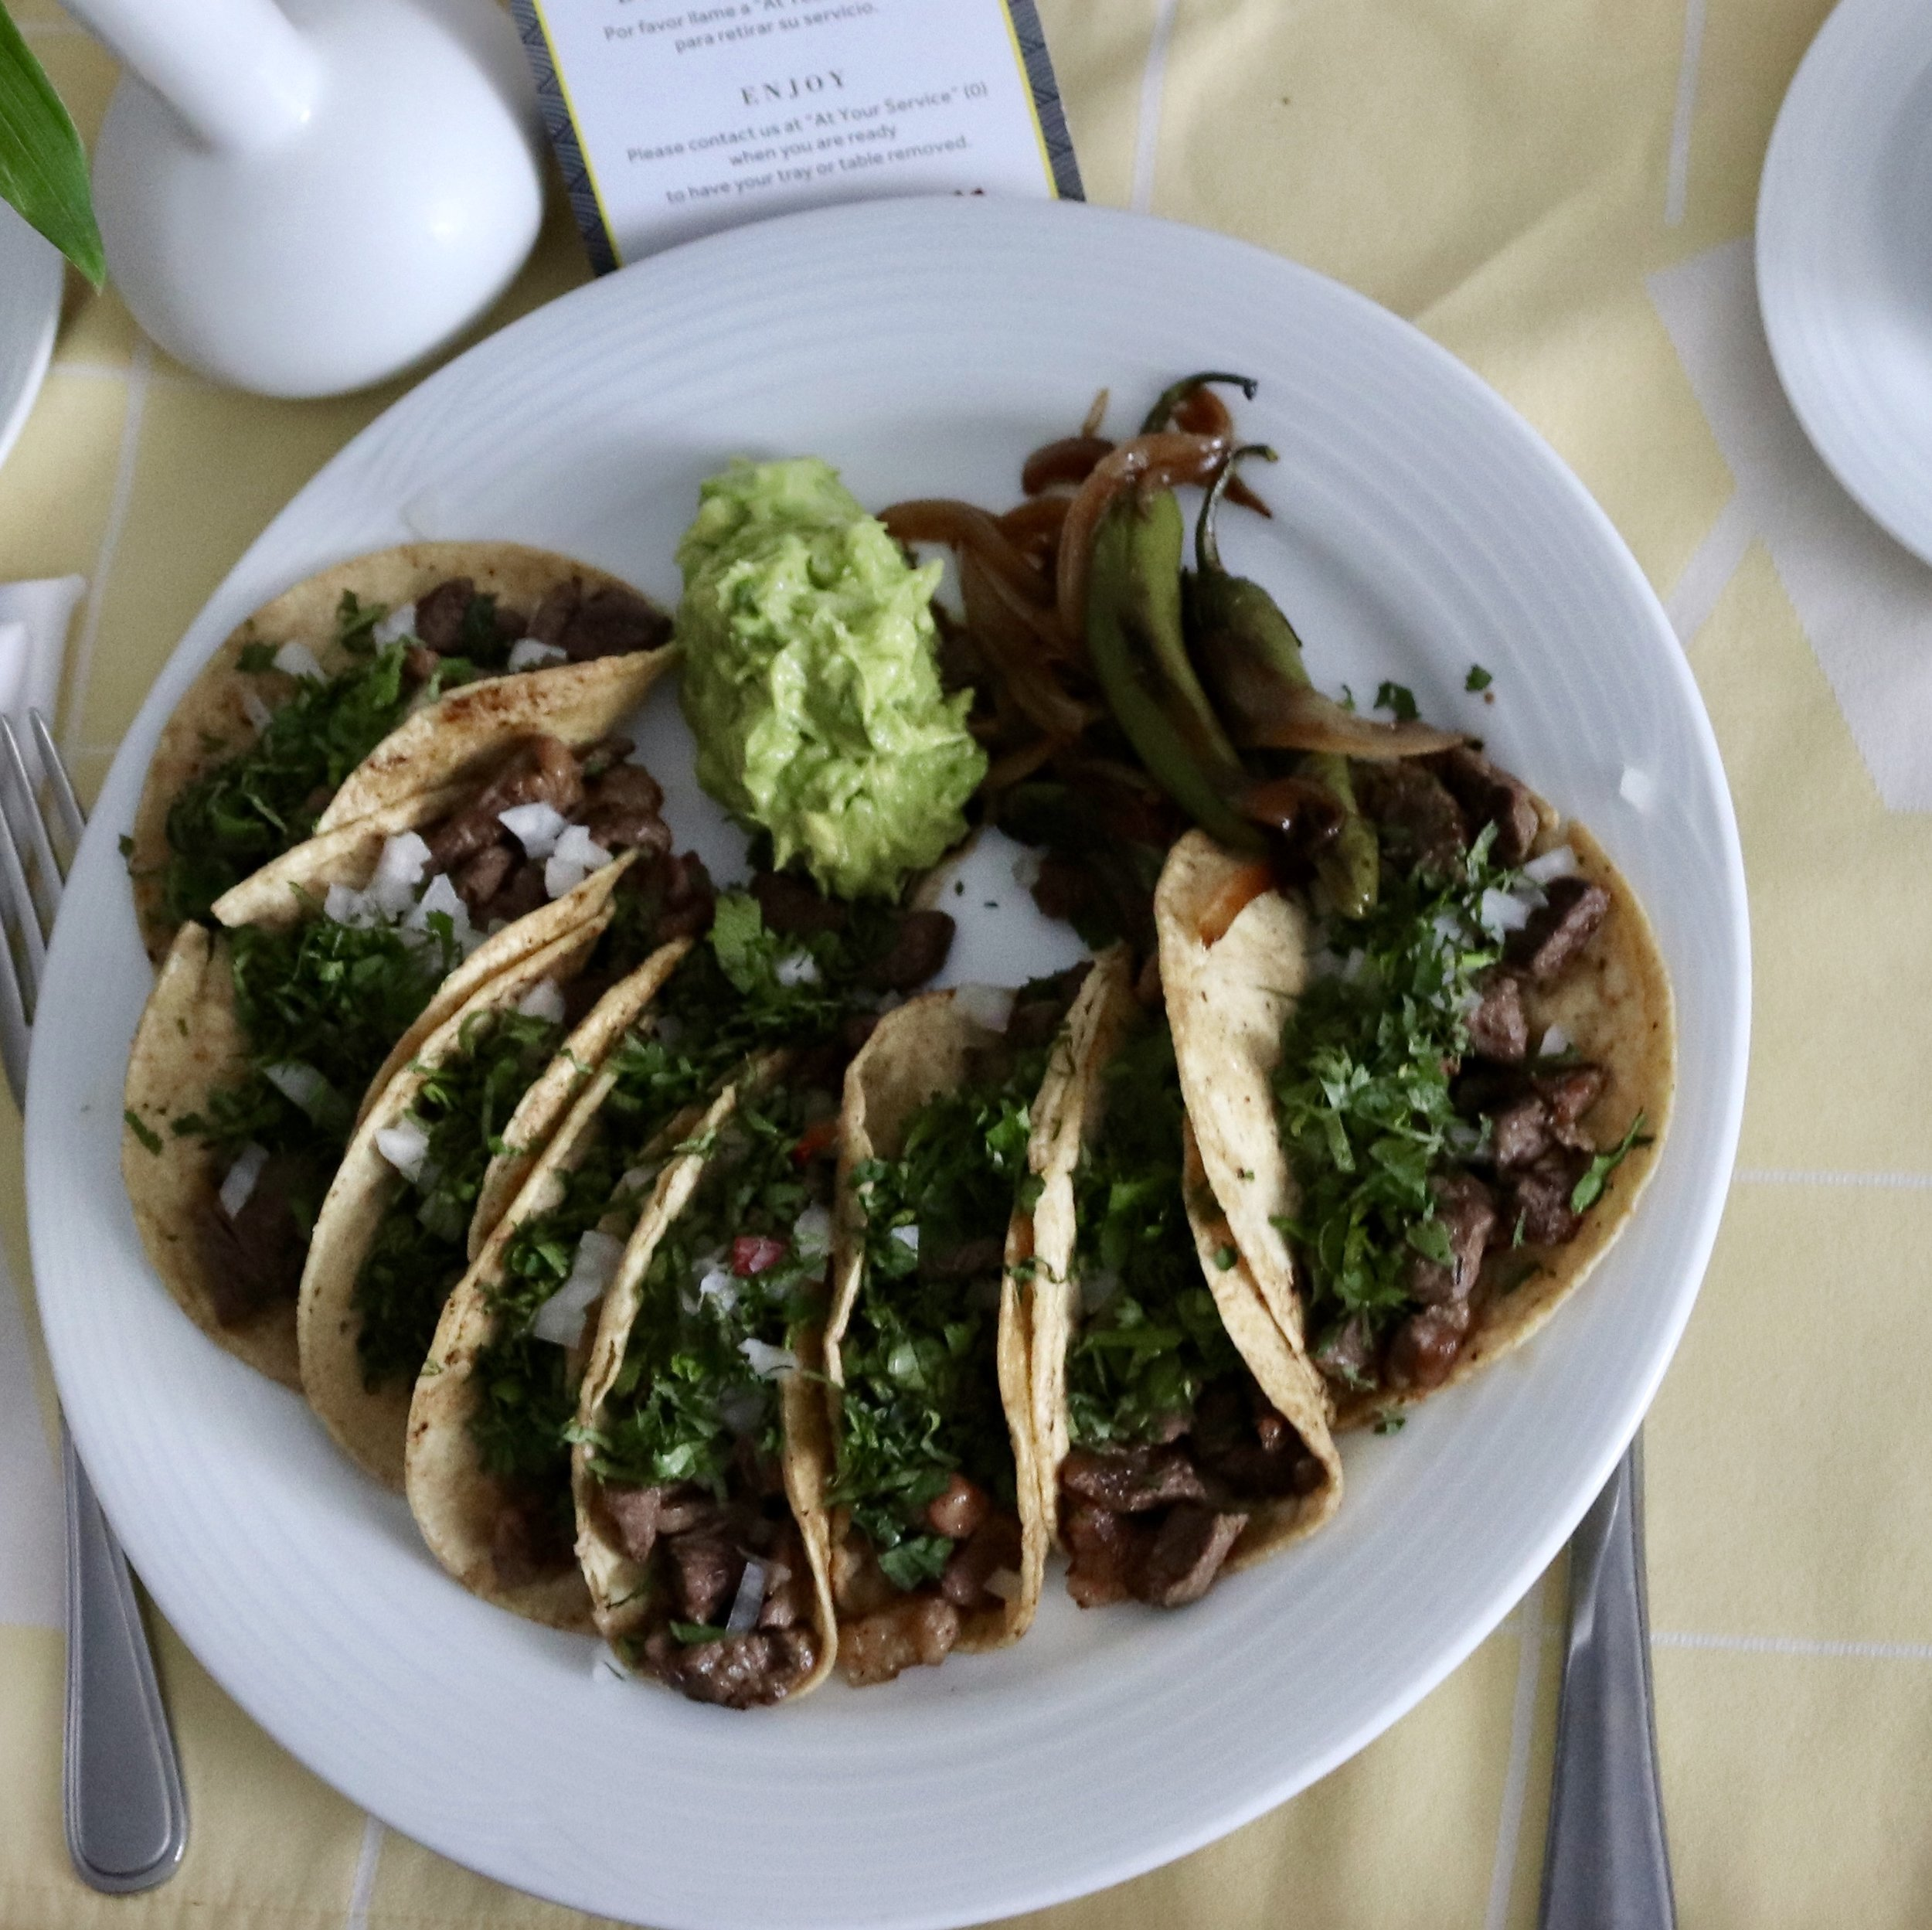 This would be a great Whole30 meal option, without the tortillas. It was delicious when I ate in in Mexico City, though.